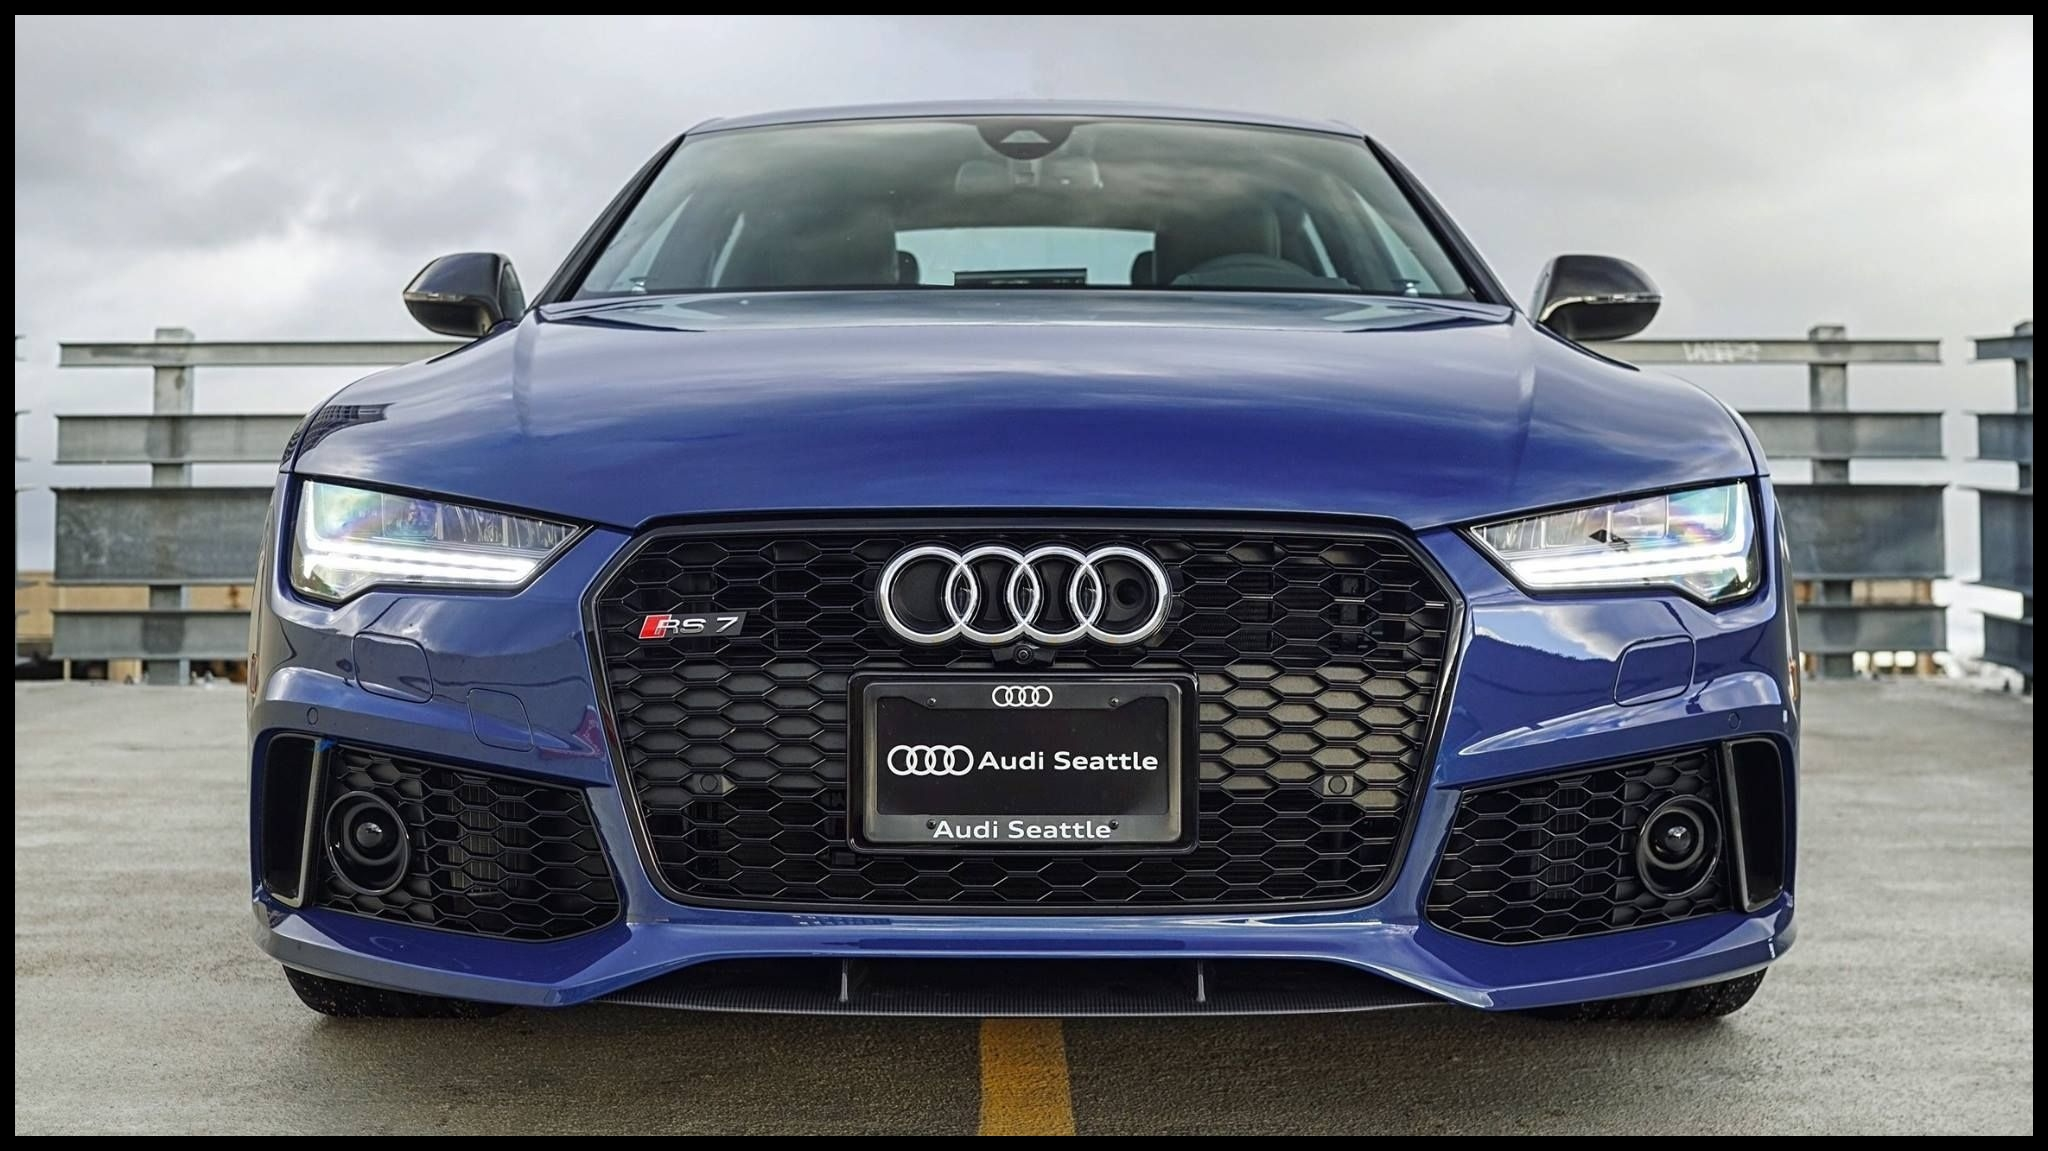 Ascari Blue RS7 Performance all up in your grille